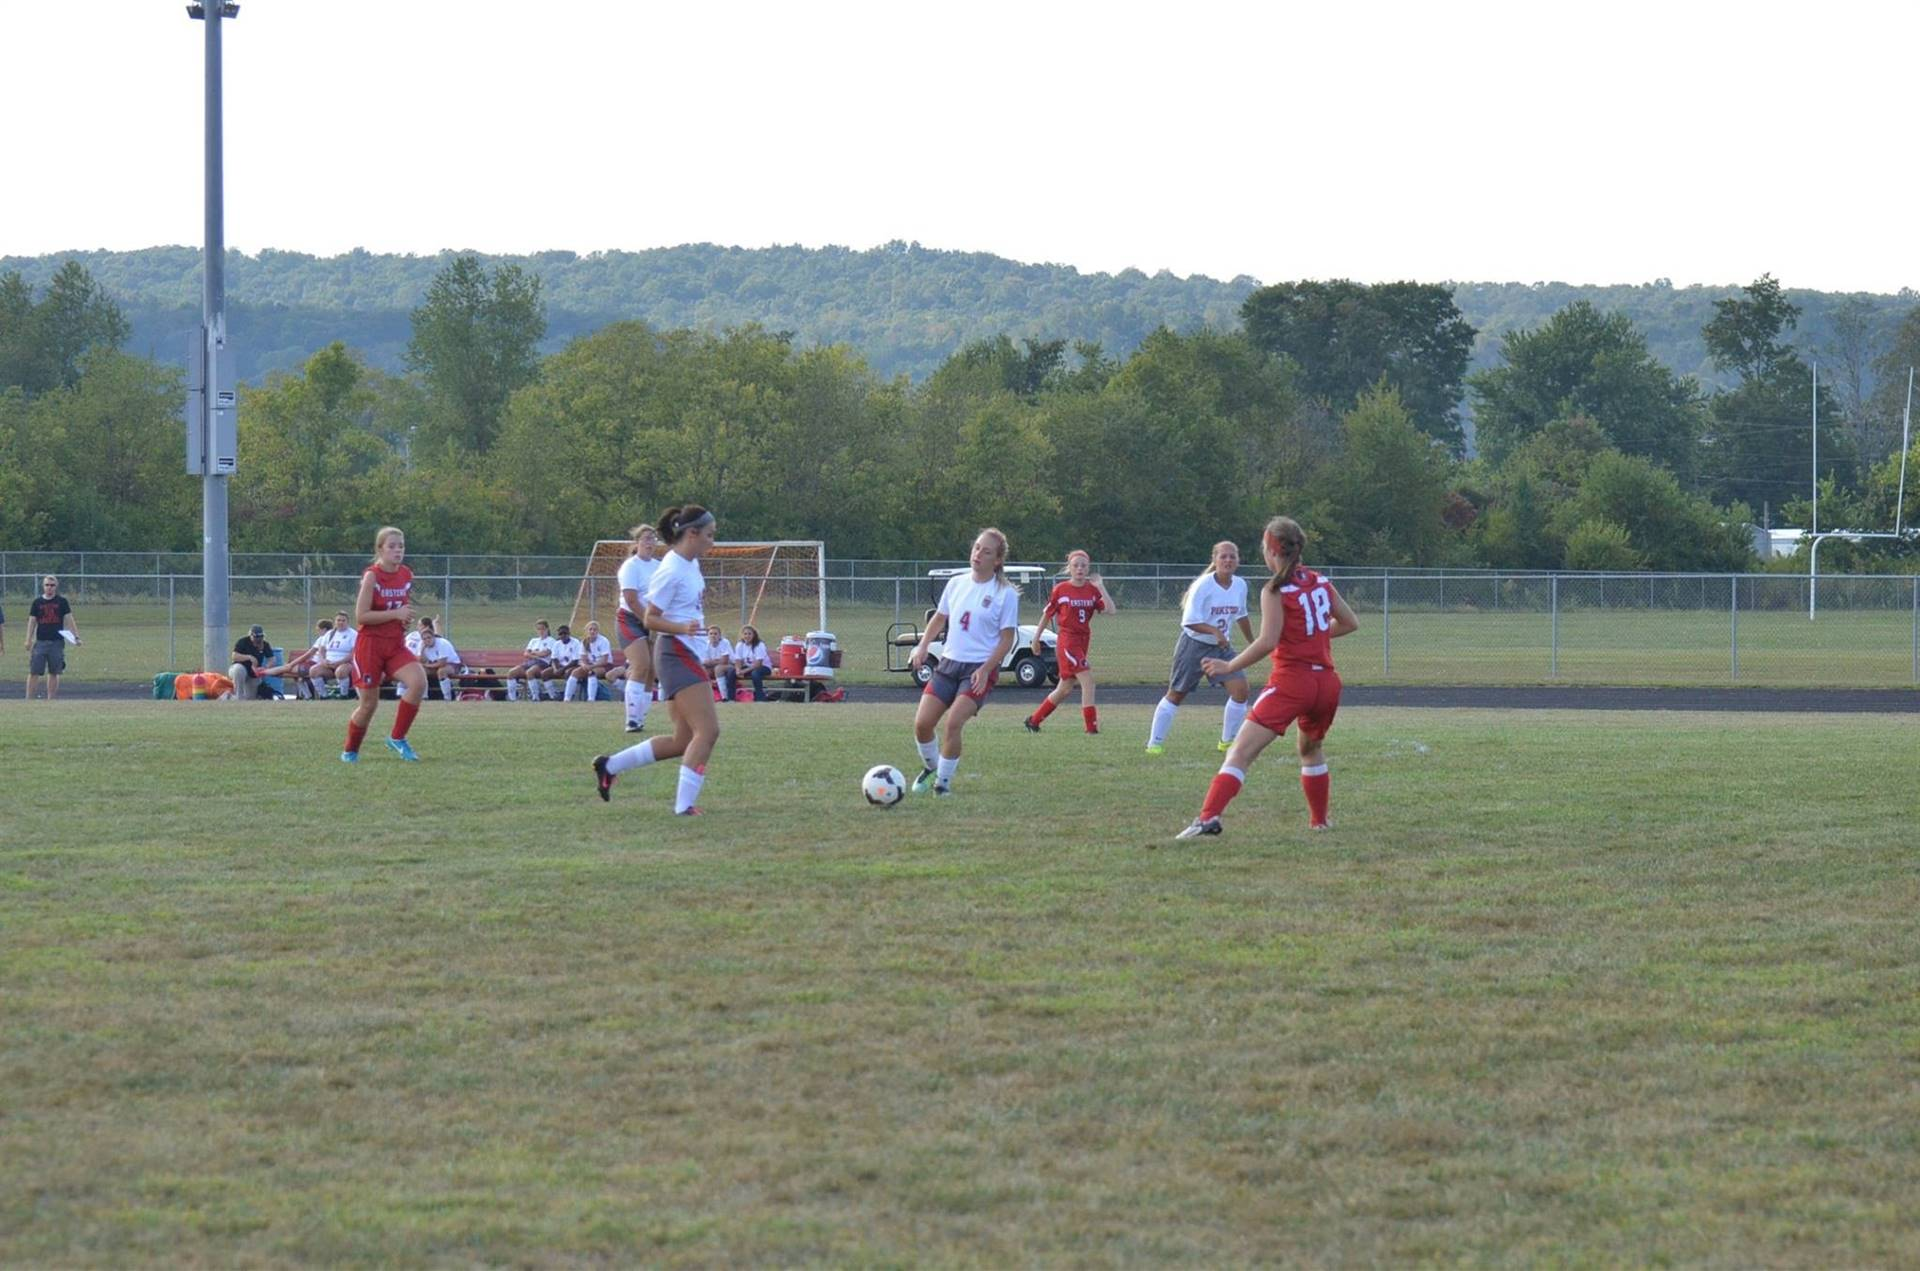 Ally Crothers taking the ball up the field to score a goal.